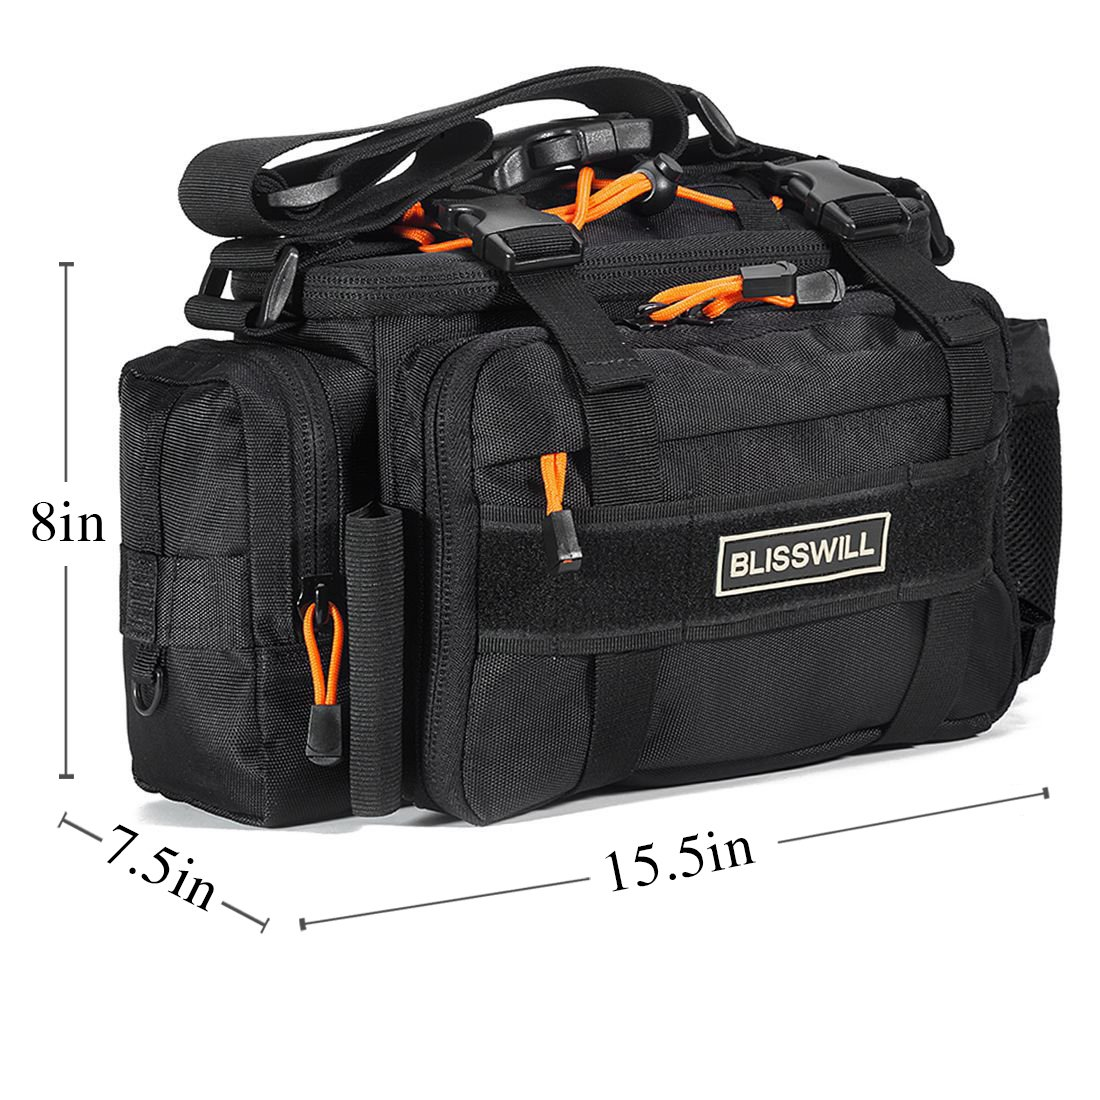 BLISSWILL Outdoor Multifunctional Fishing Tackle Bag Water-Resistant sided Waist Shoulder Carry Strap Storage Waist Pack Sling Bag Fishing Gear Storage for Fishing Hiking Climbing (Black Larger)